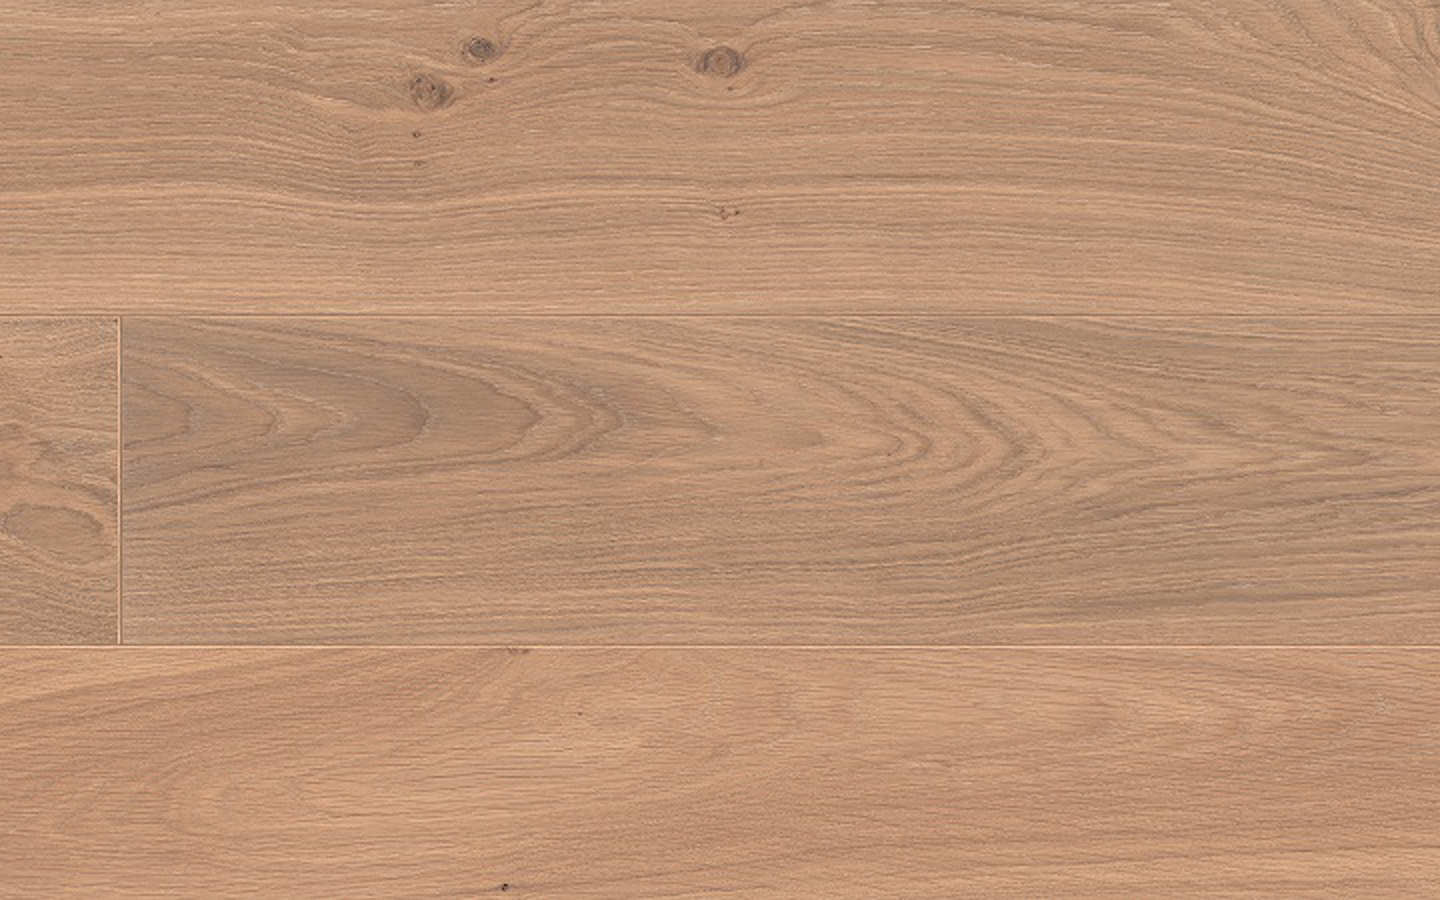 Château by adler - Oak Provence standard wire brushed color oiled - 19 x 180-350 x 1800-5000 mm